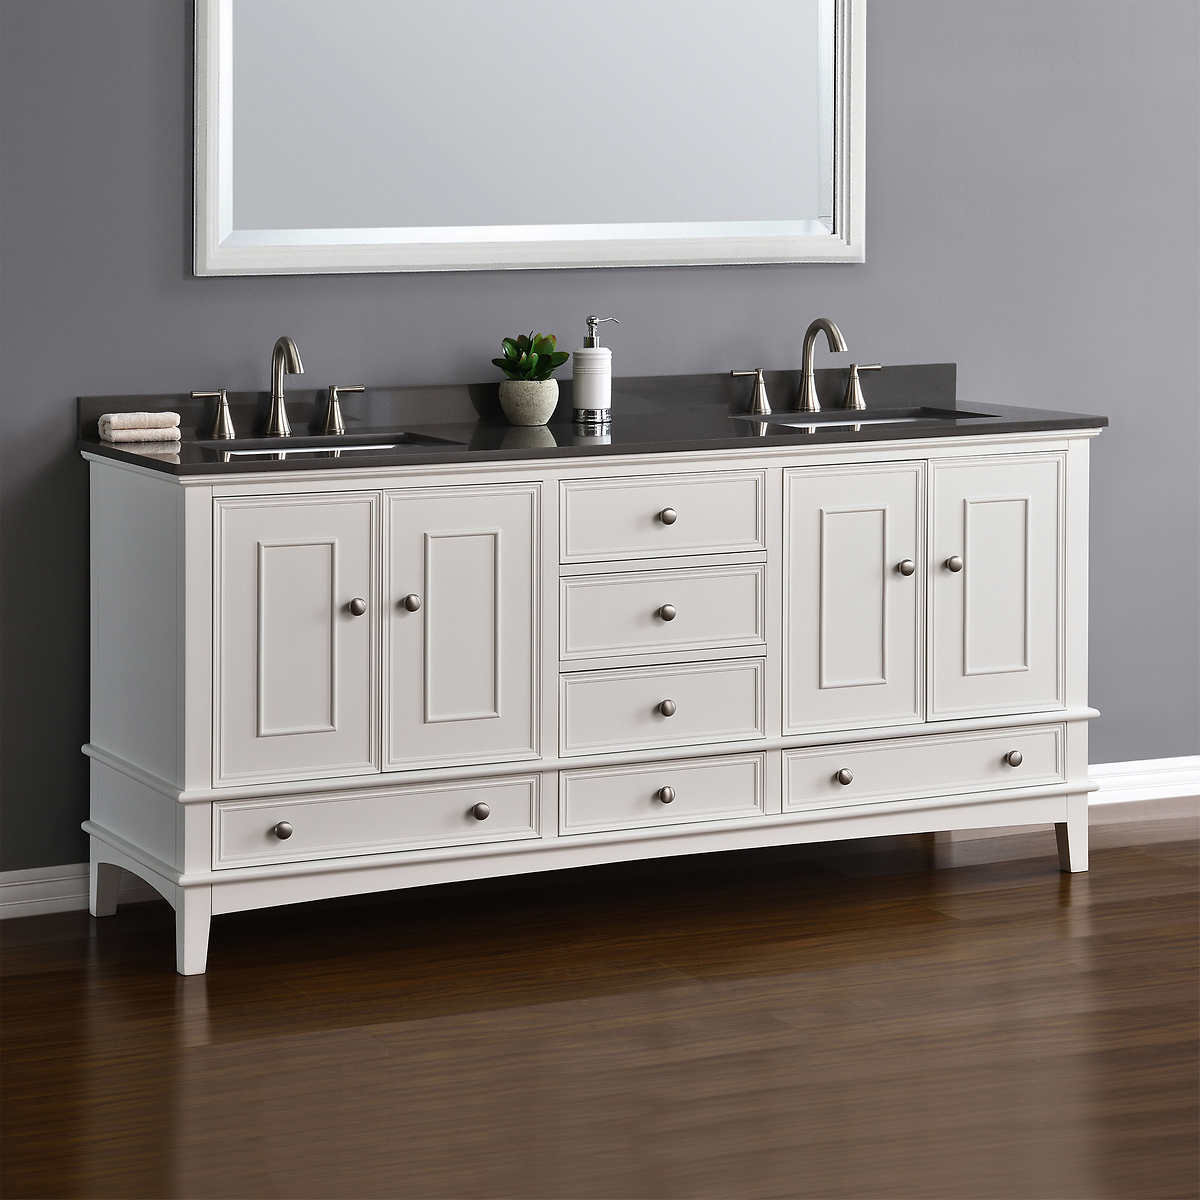 Double sink white bathroom vanities - Cambridge 72 White Double Sink Vanity By Mission Hills